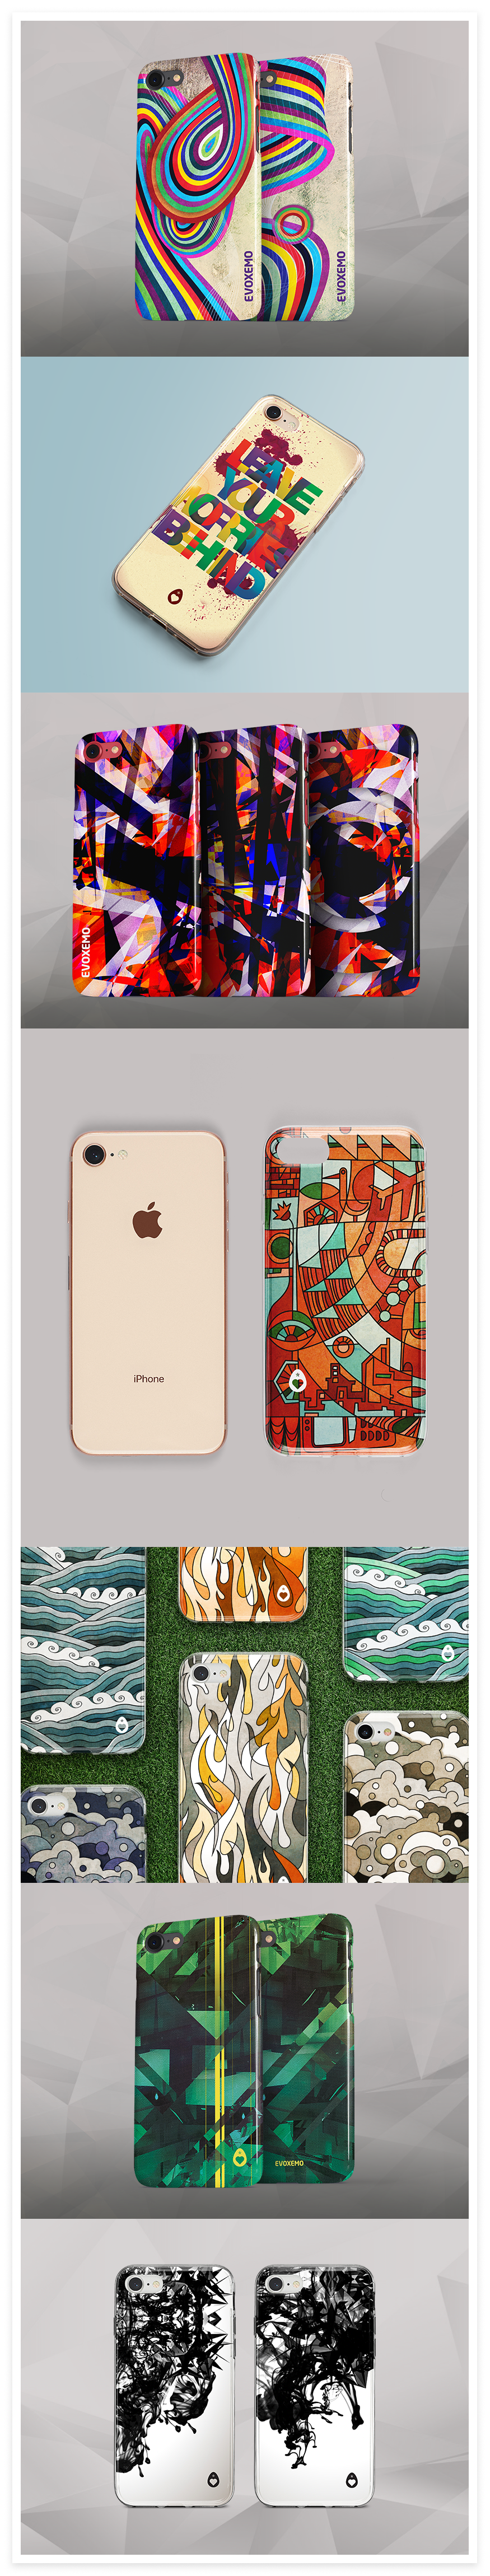 iPhone Case Cover - Showcase